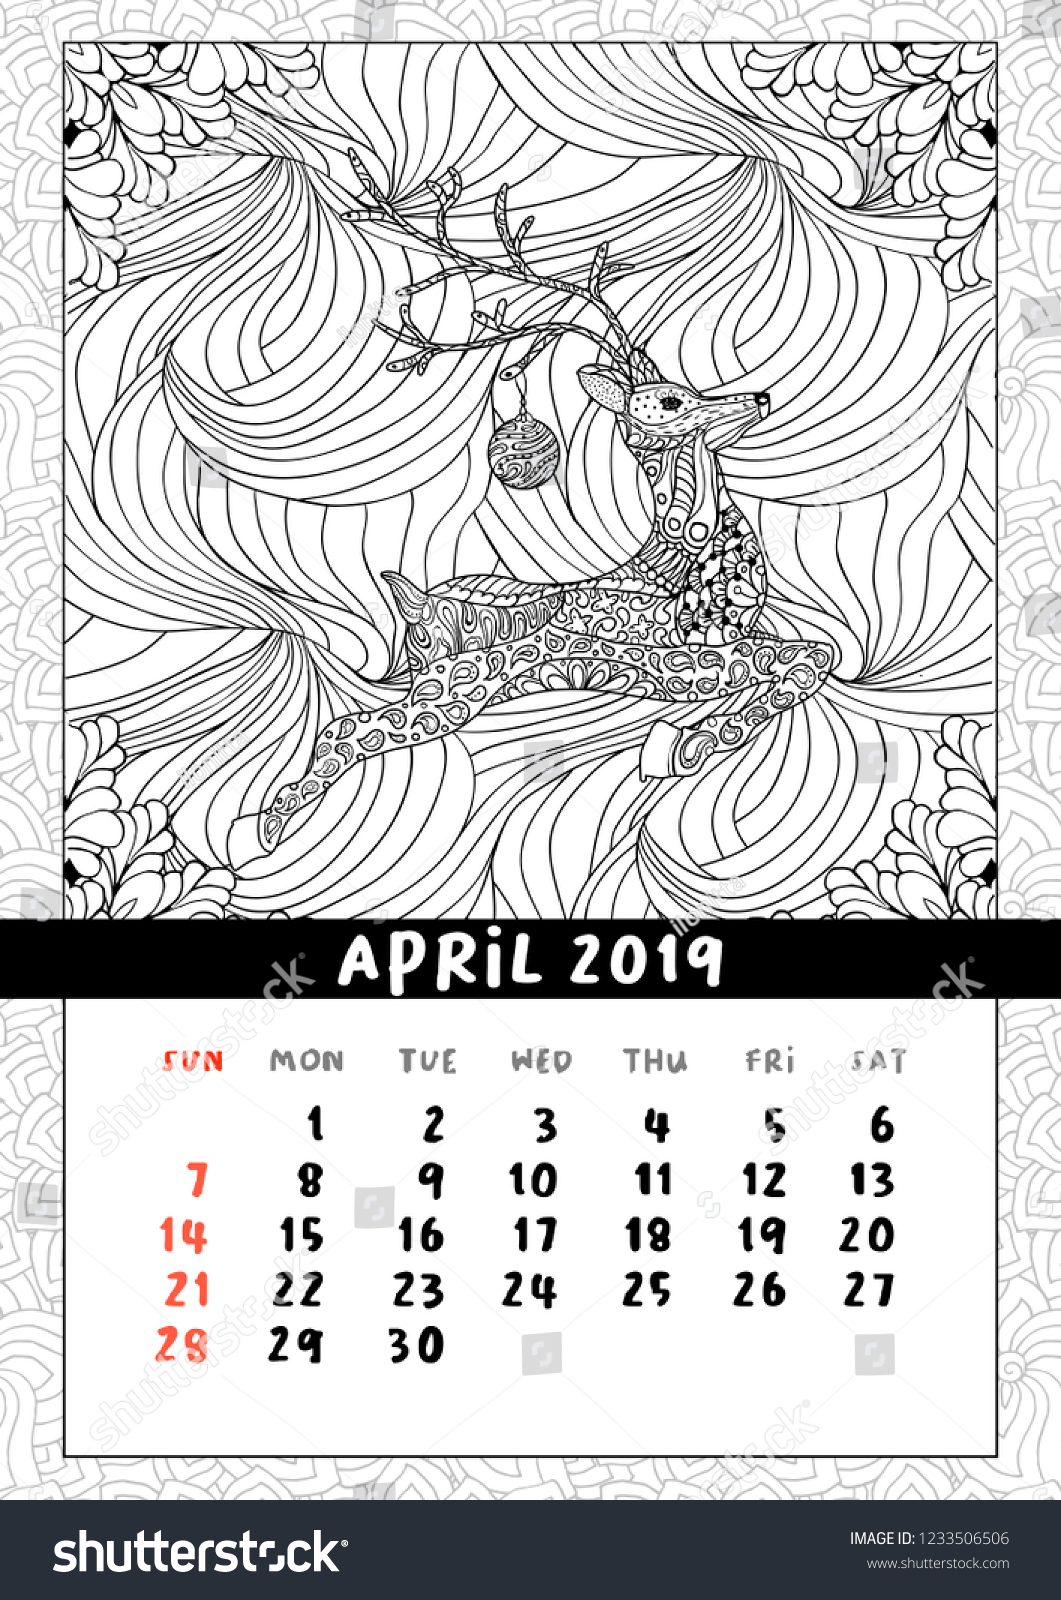 christmas deer calendar calendar april 2019 year coloring book poster for adults and kids